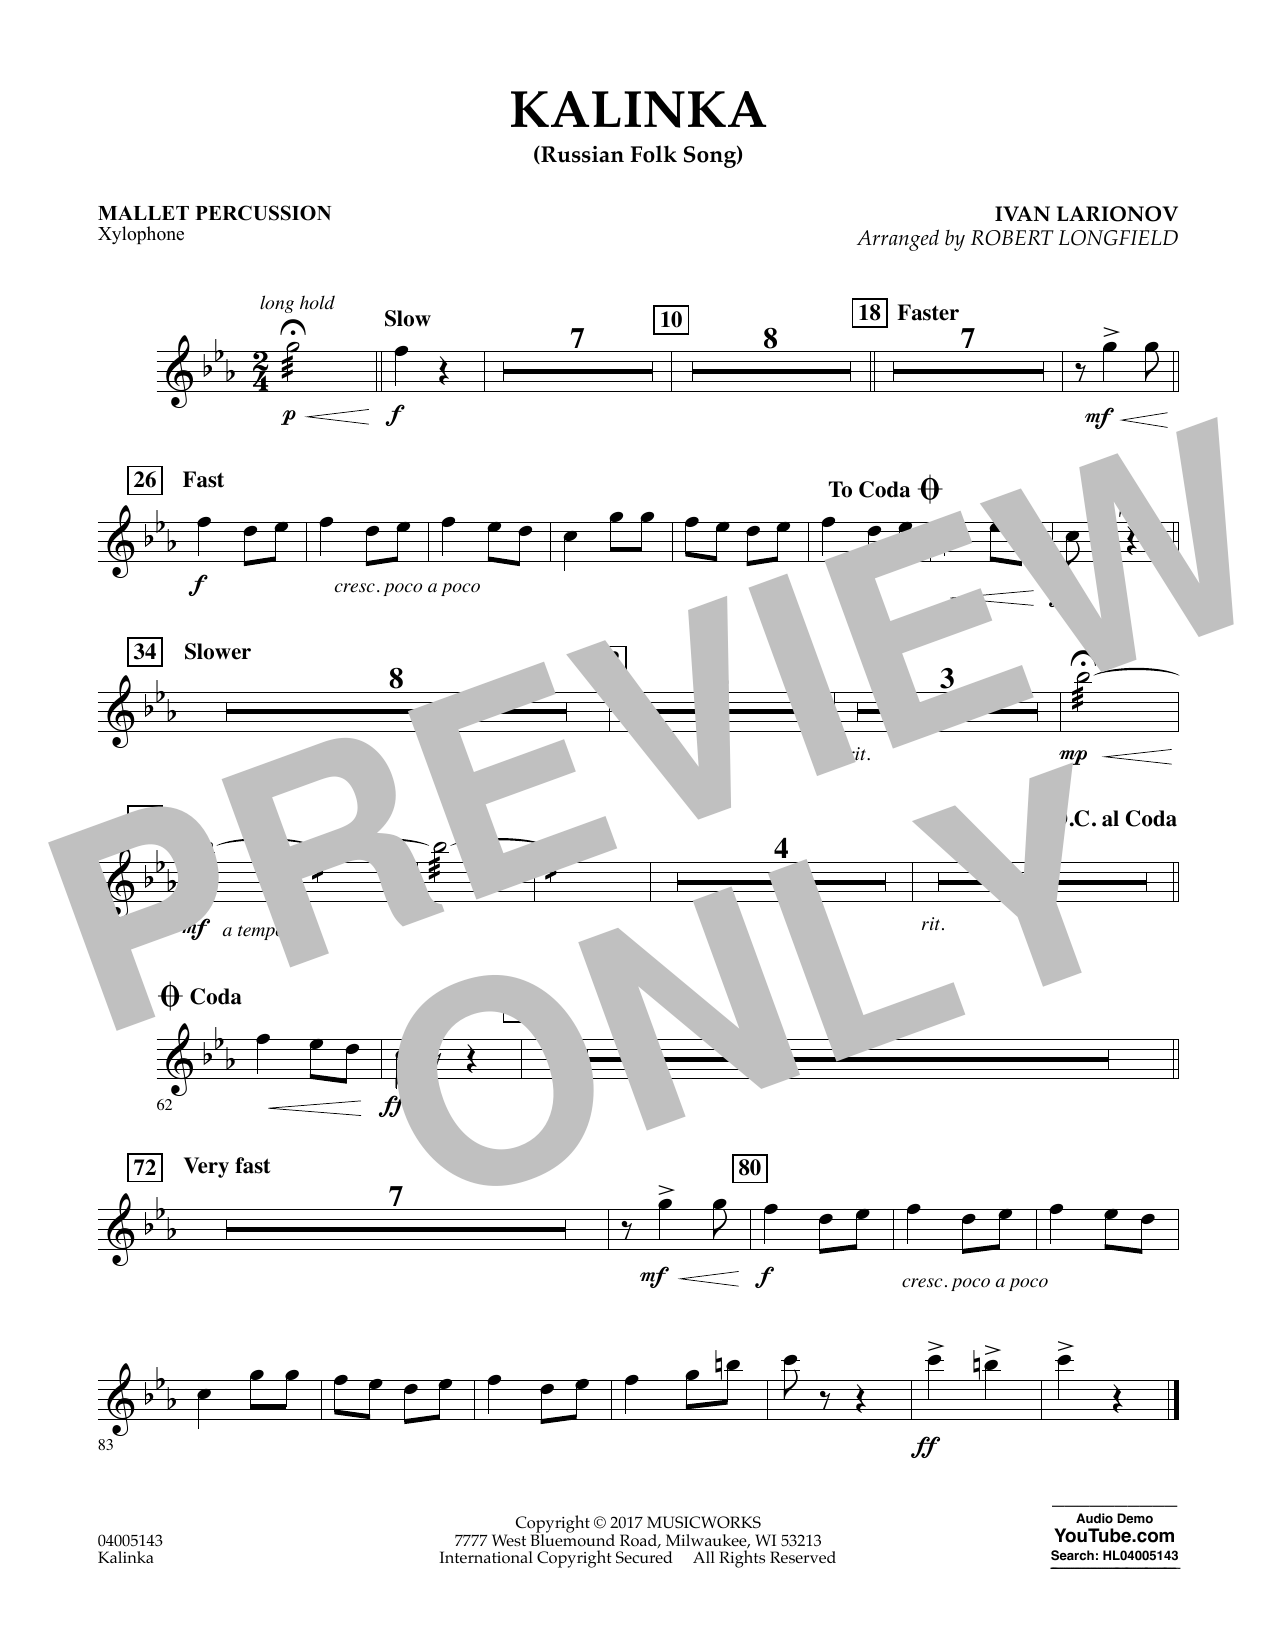 Kalinka (Russian Folk Song) - Mallet Percussion Sheet Music